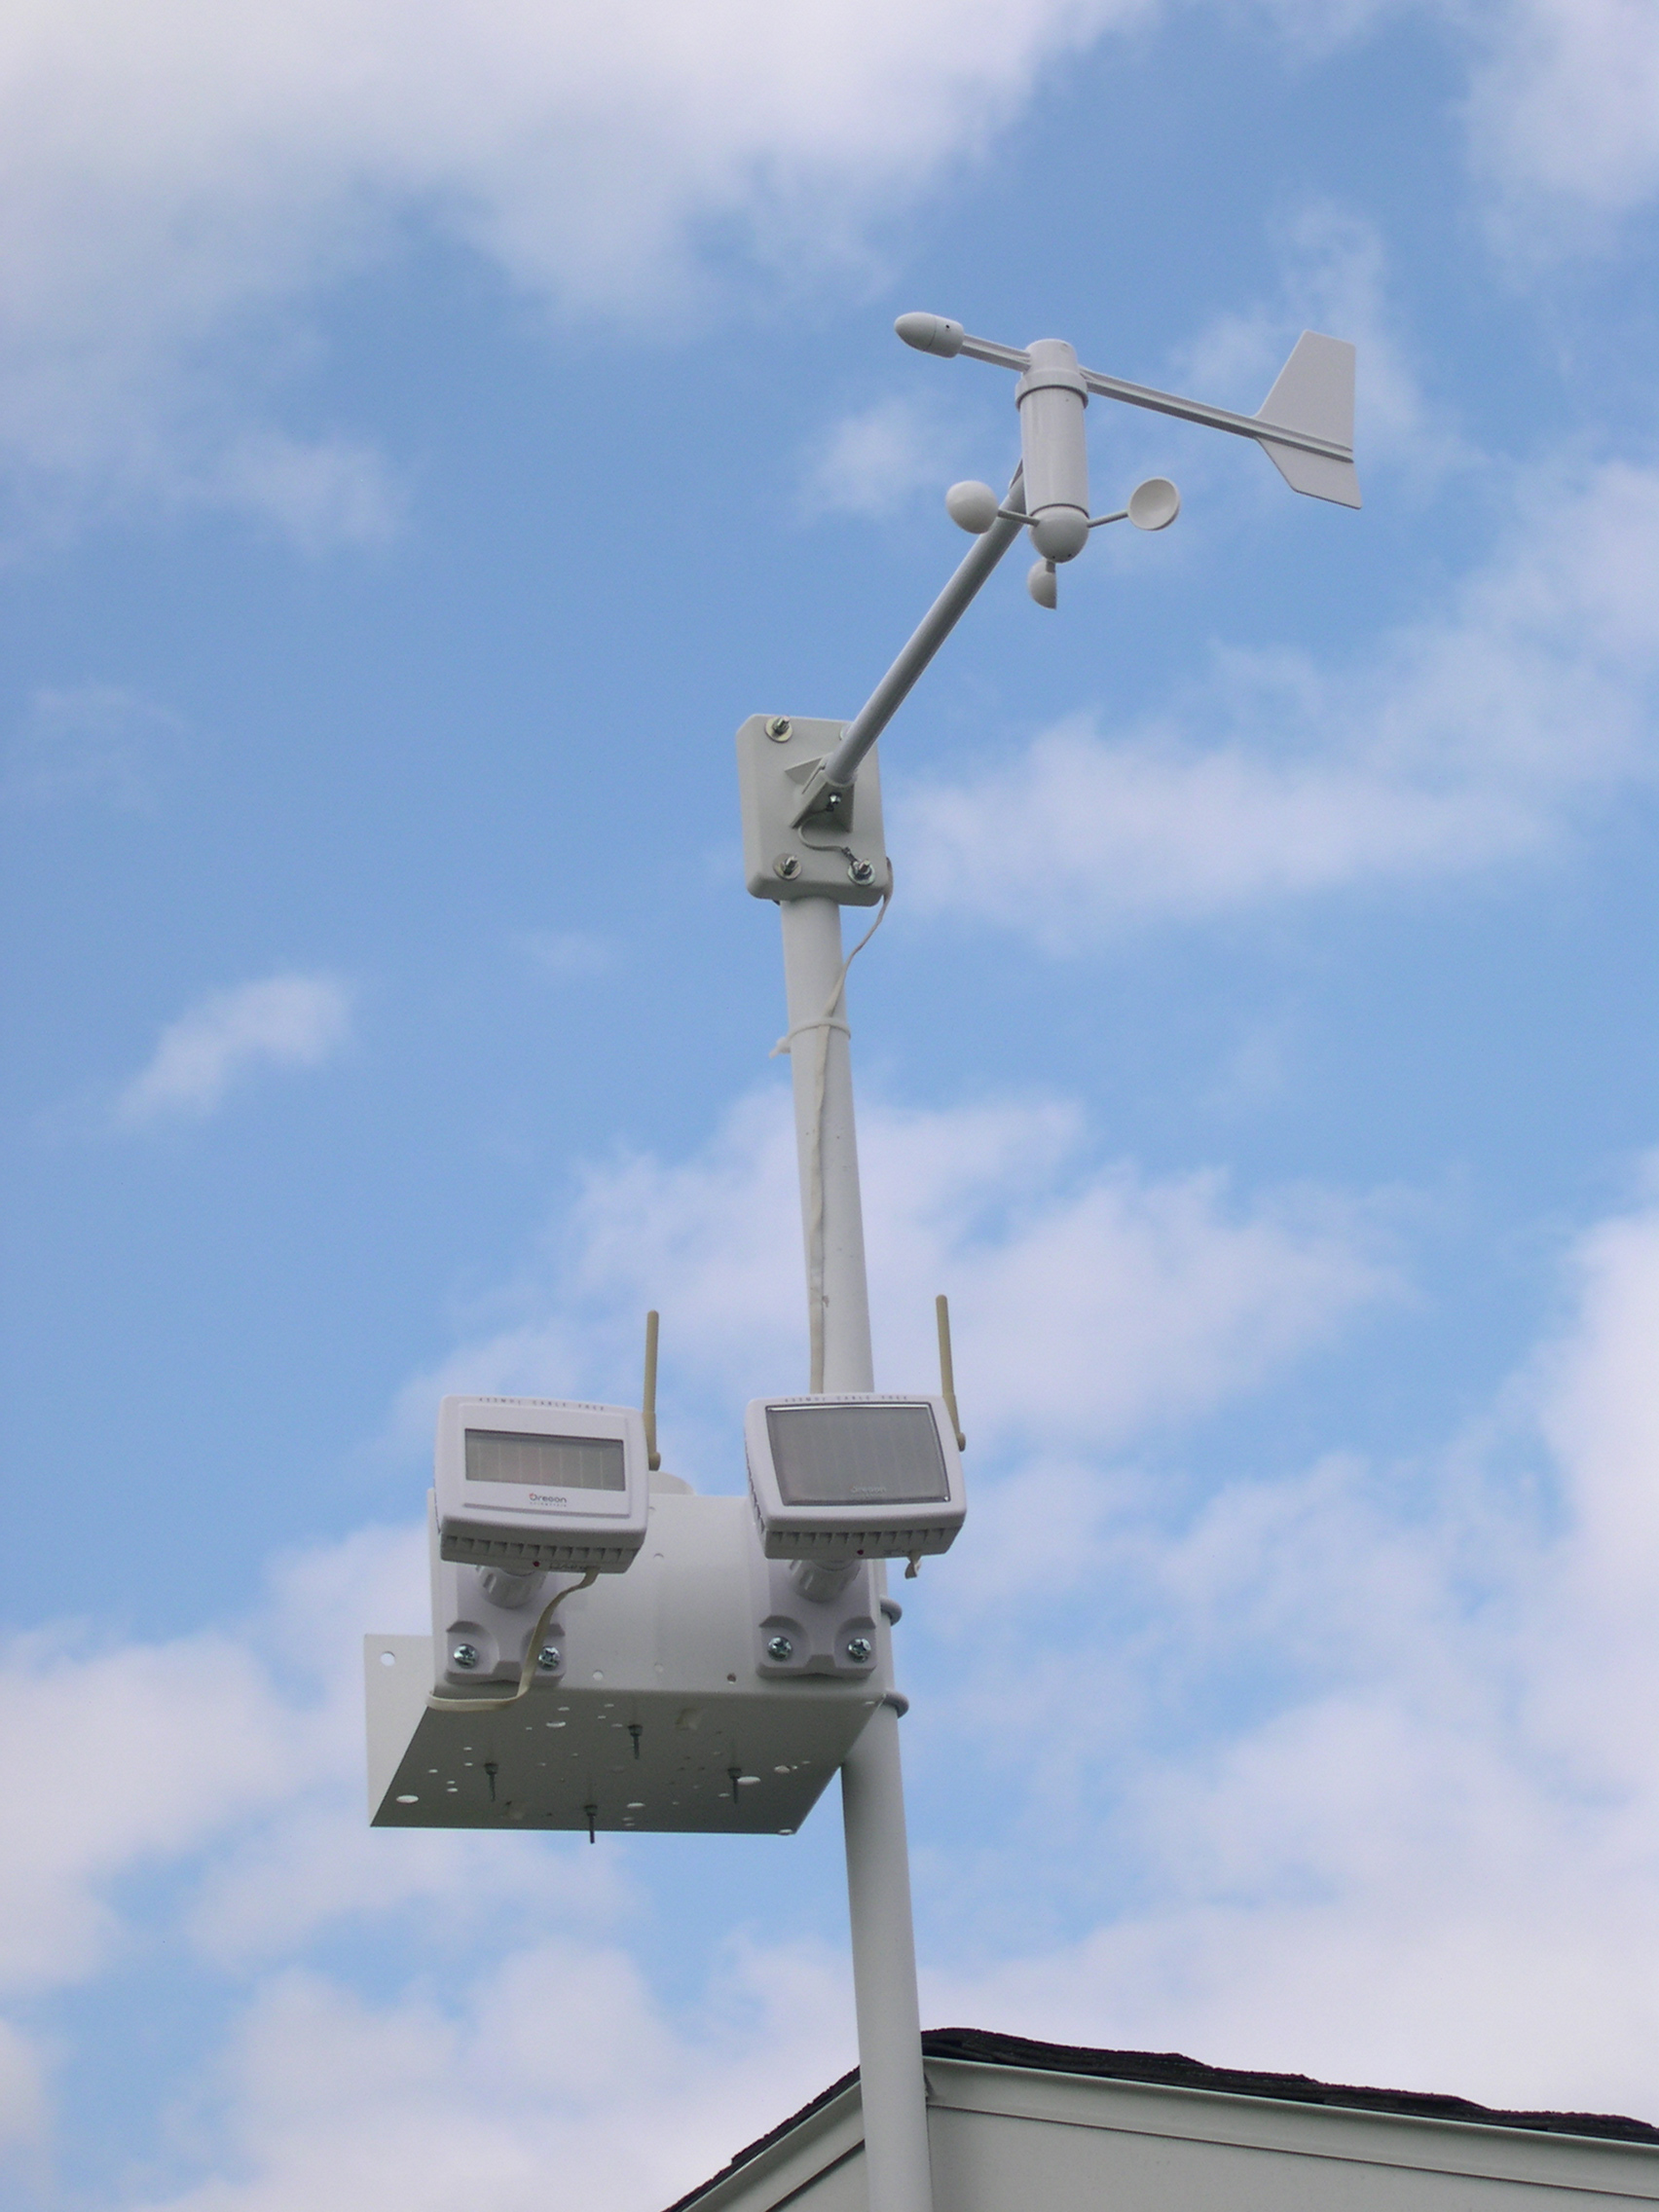 DSCN6764.JPG - Solar panels of the Wind Vane/Speed and Rain Collection Sensors